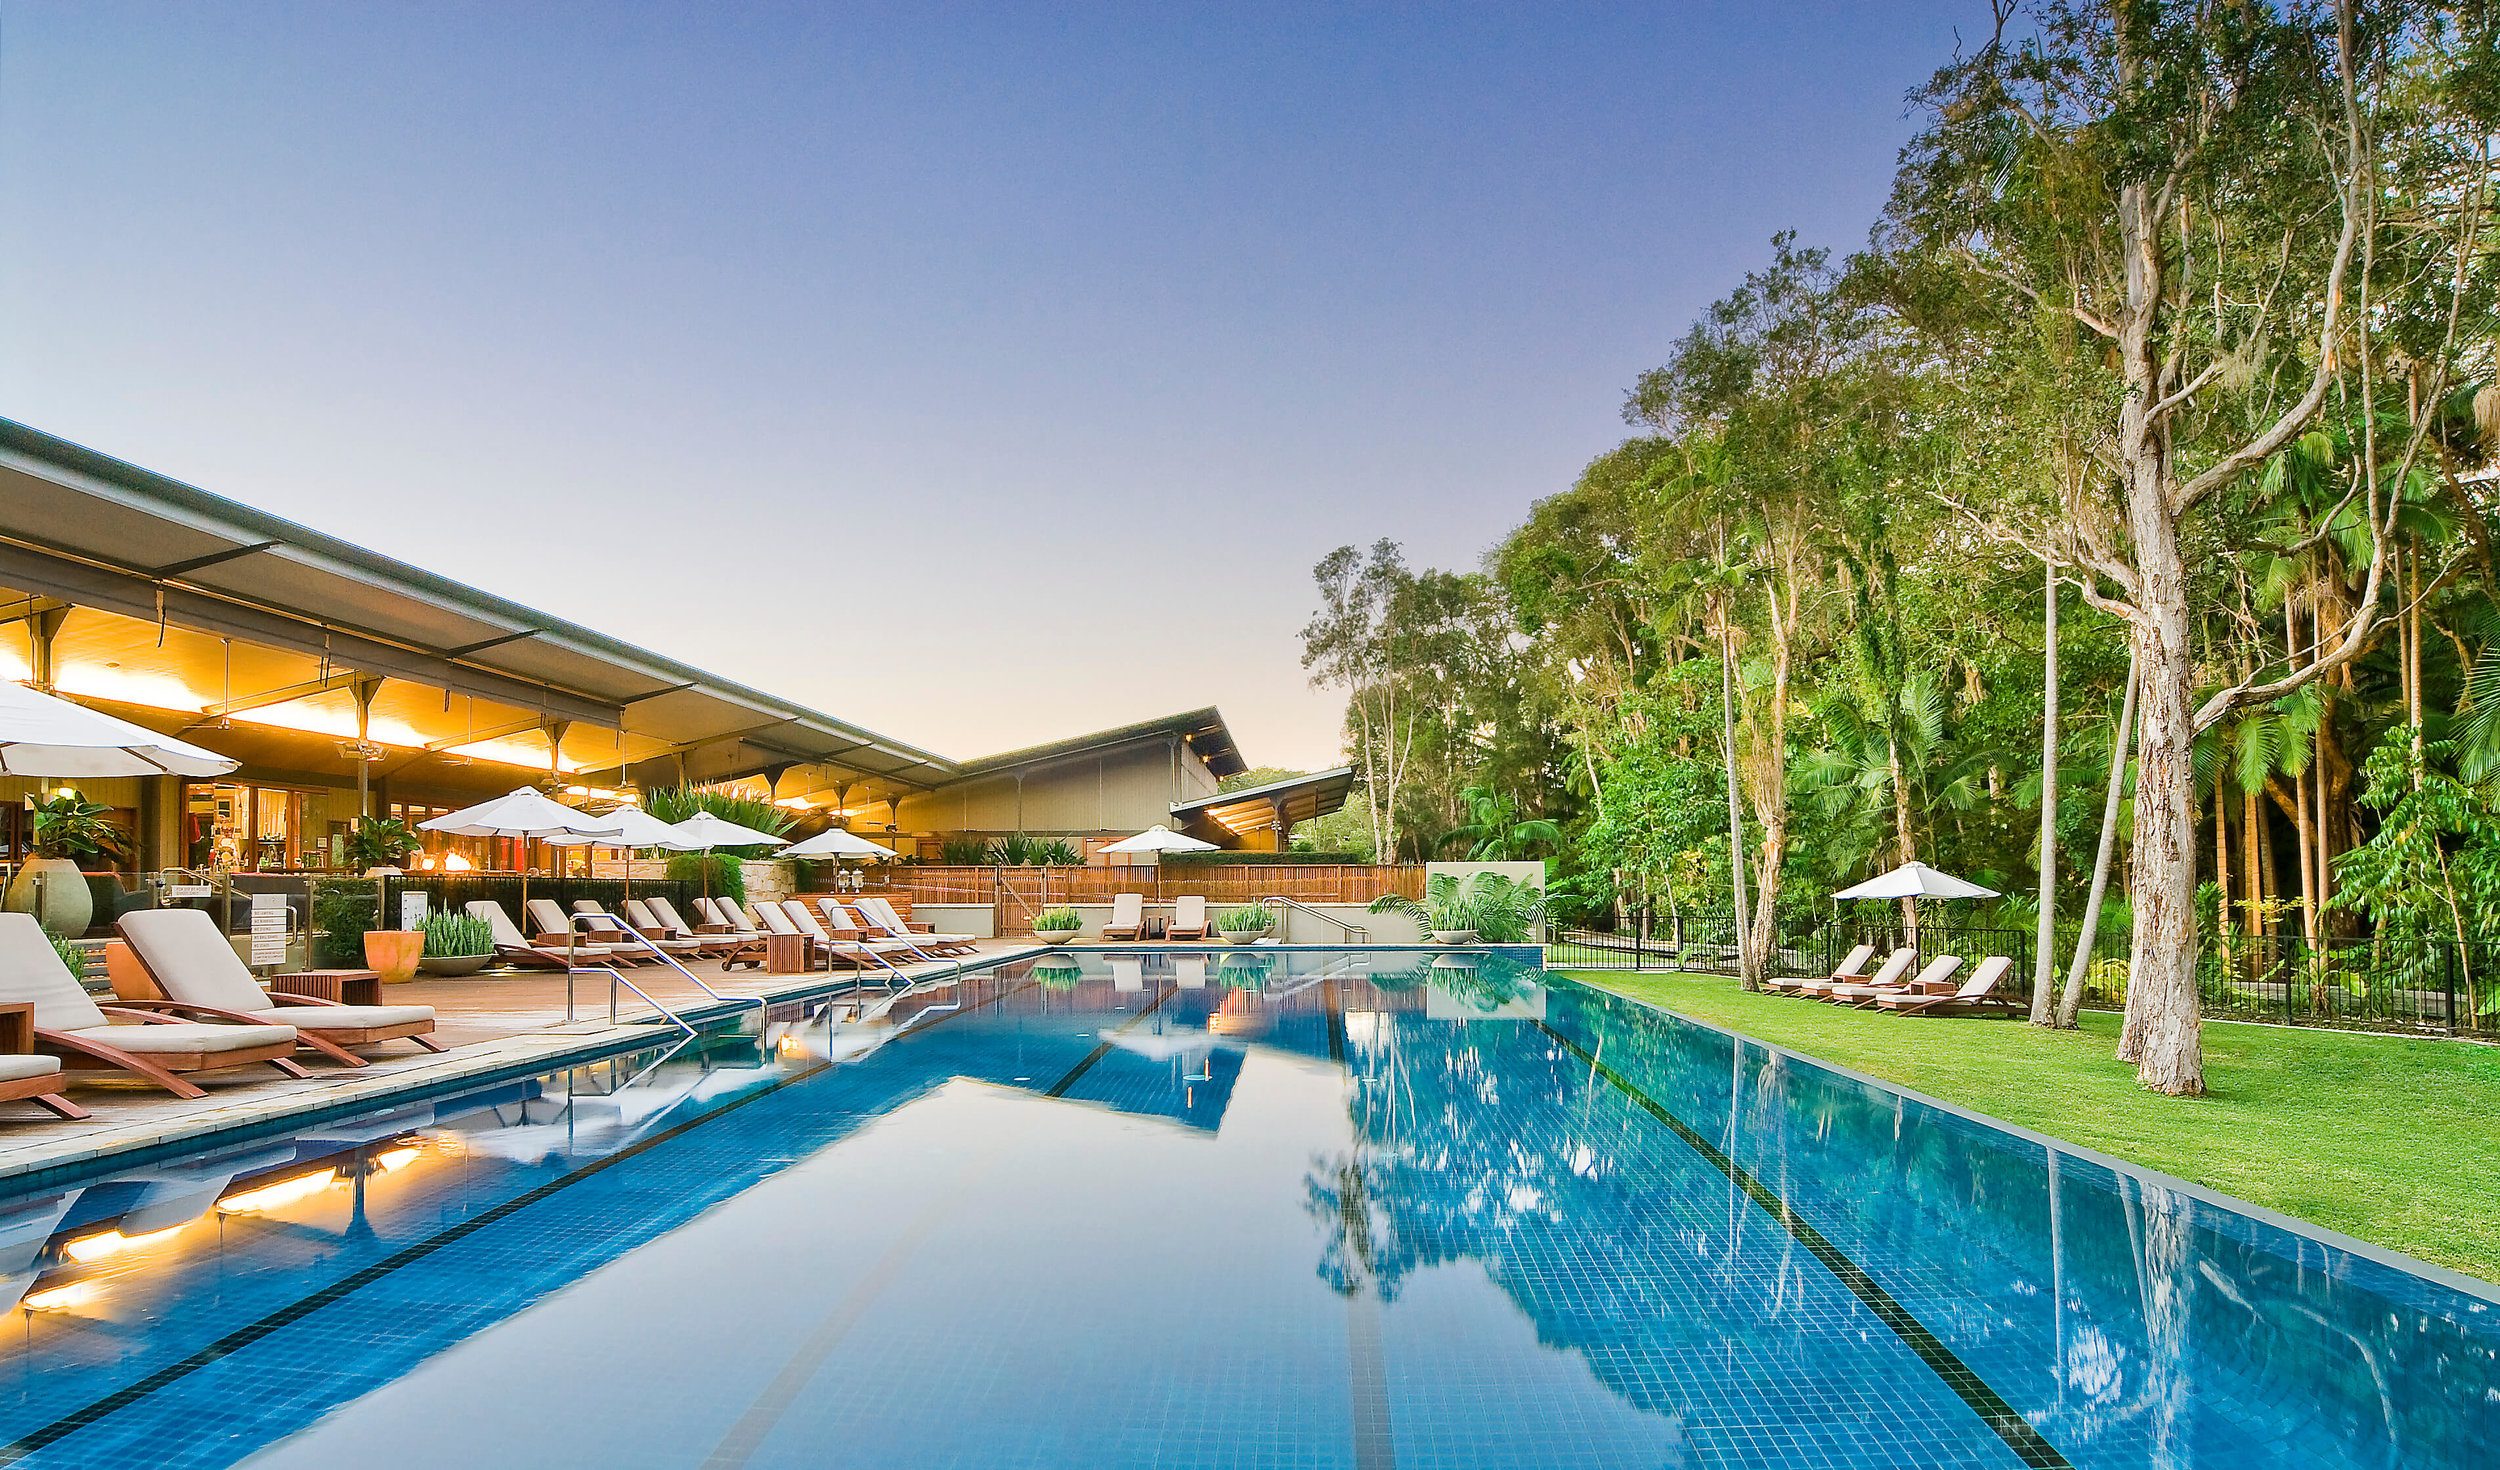 Rainforest Luxury Retreat - Byron at Byron 2 nights accommodation in a Rainforest Suite, return flights and transfers to the resort.ex Newcastle or CanberraStarting from $598 per person twin share★★★★★